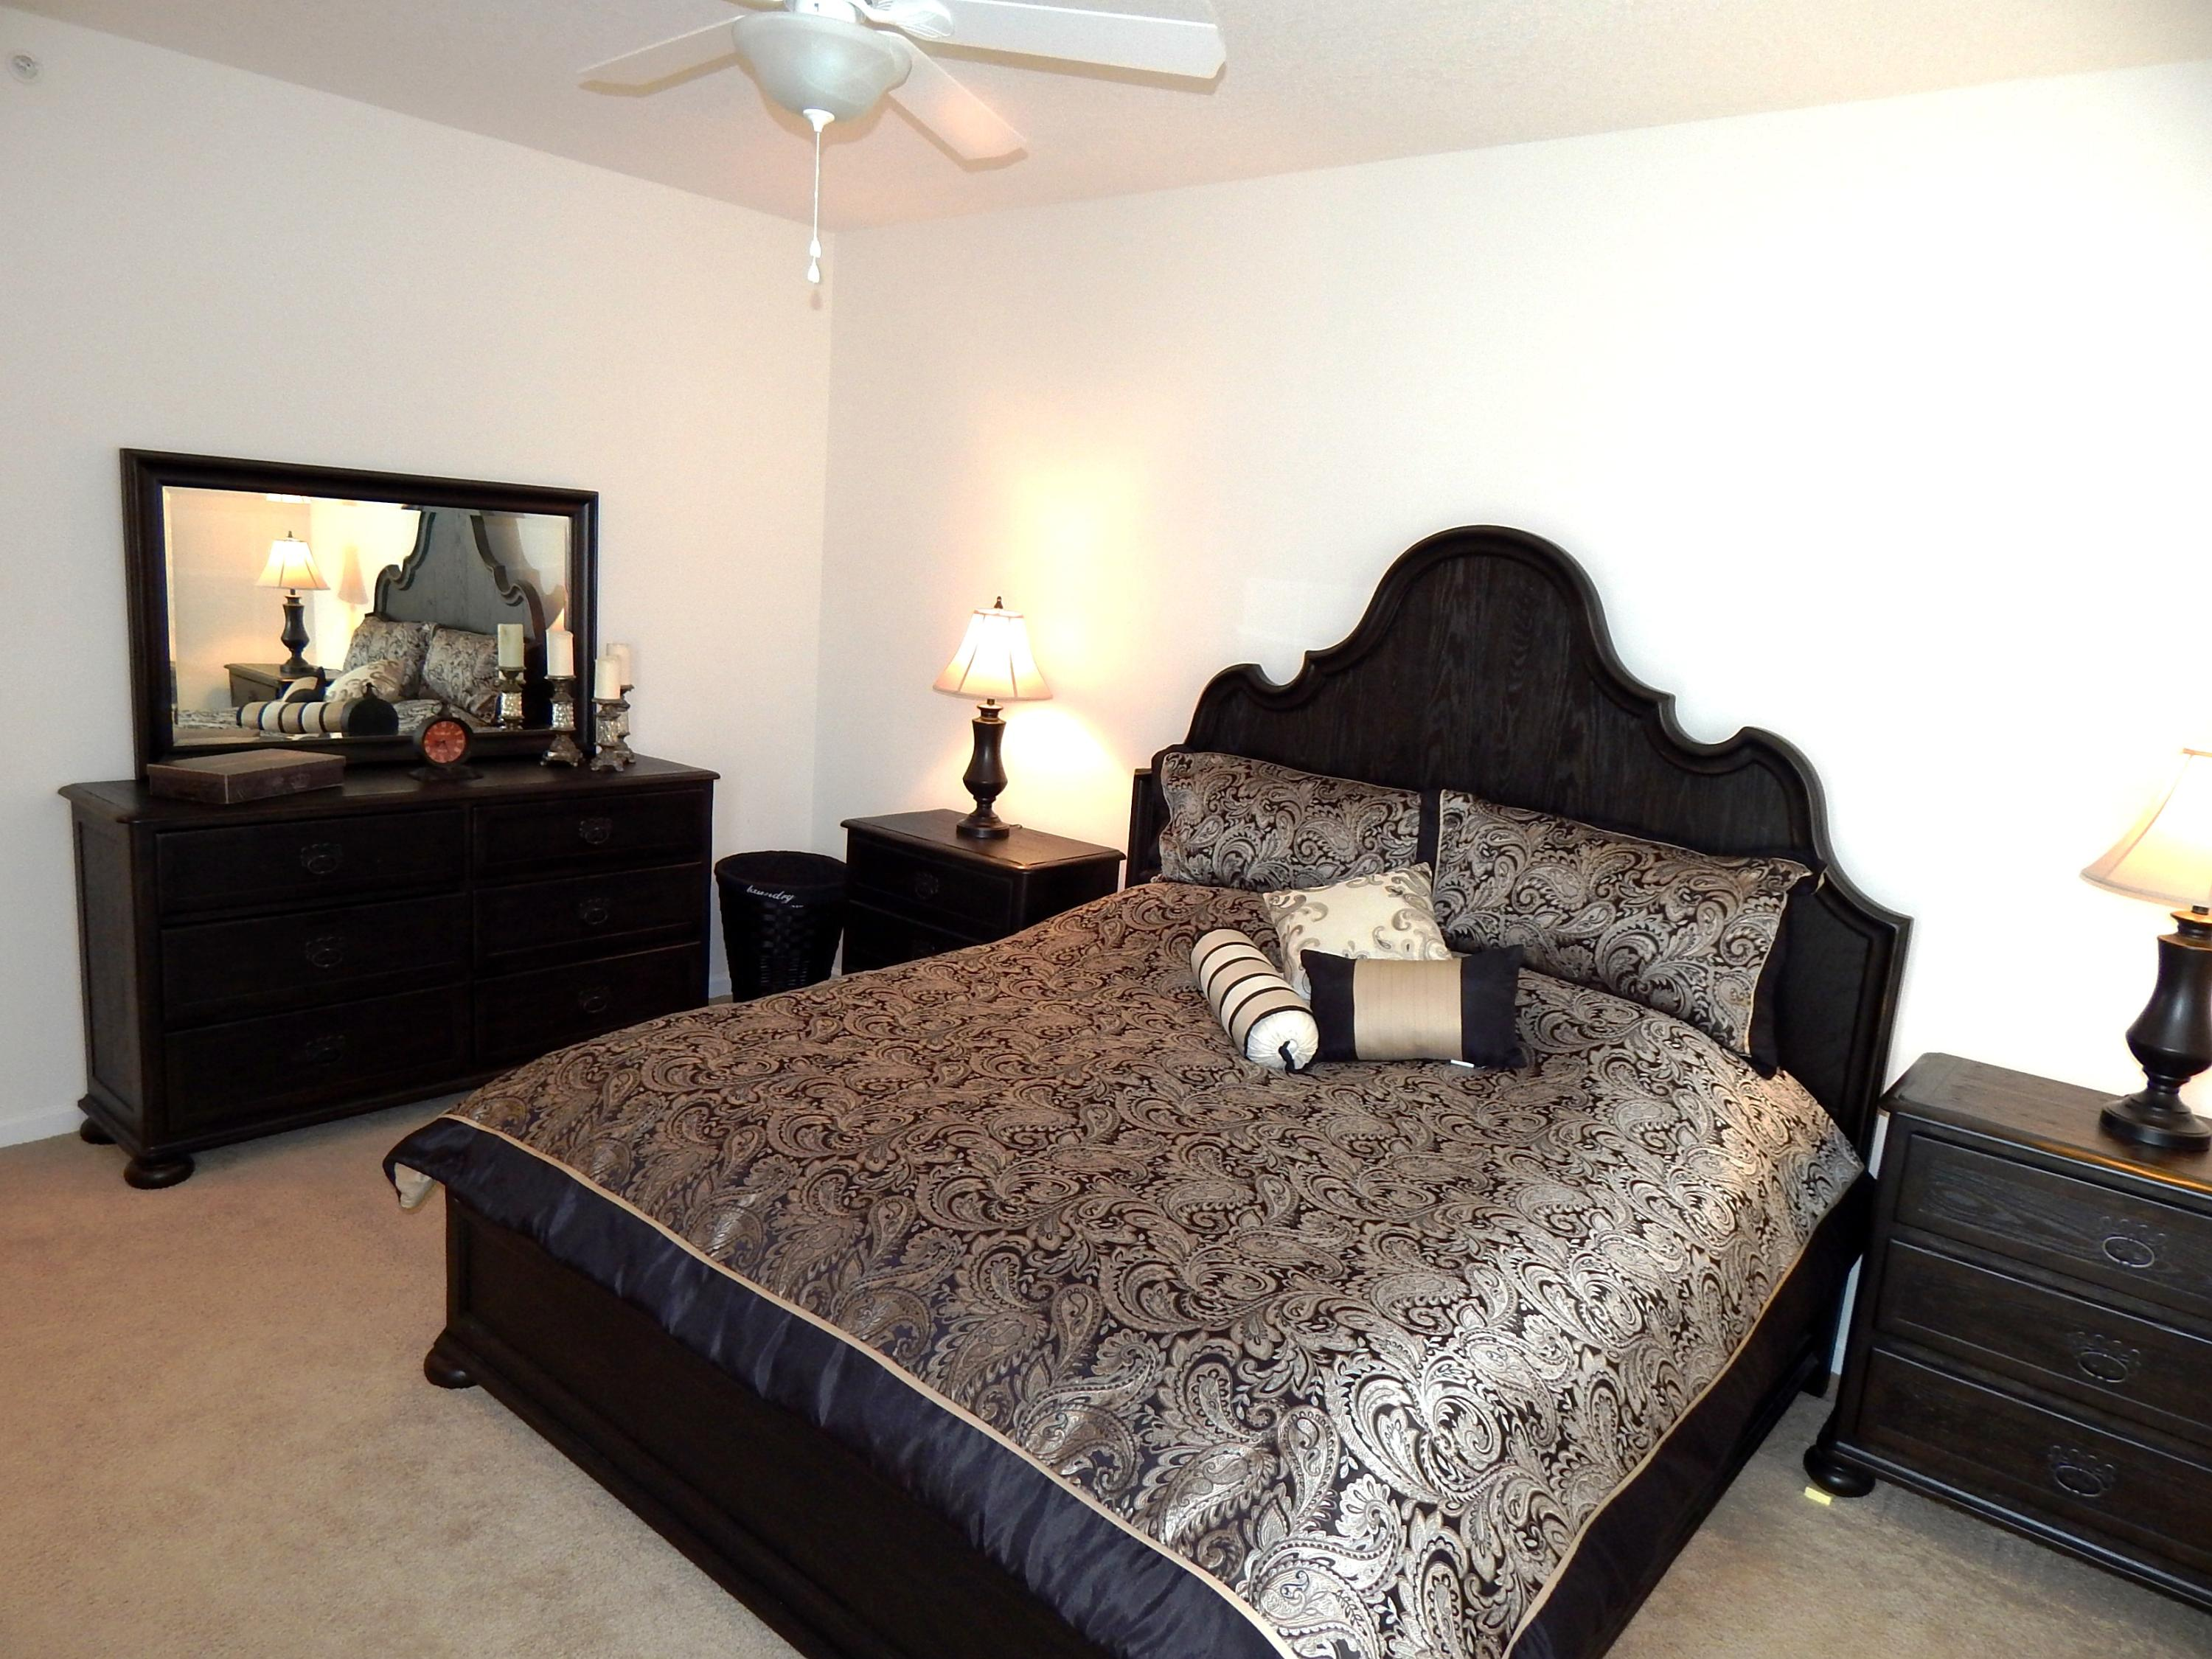 MaBdrm KING SIZE BED